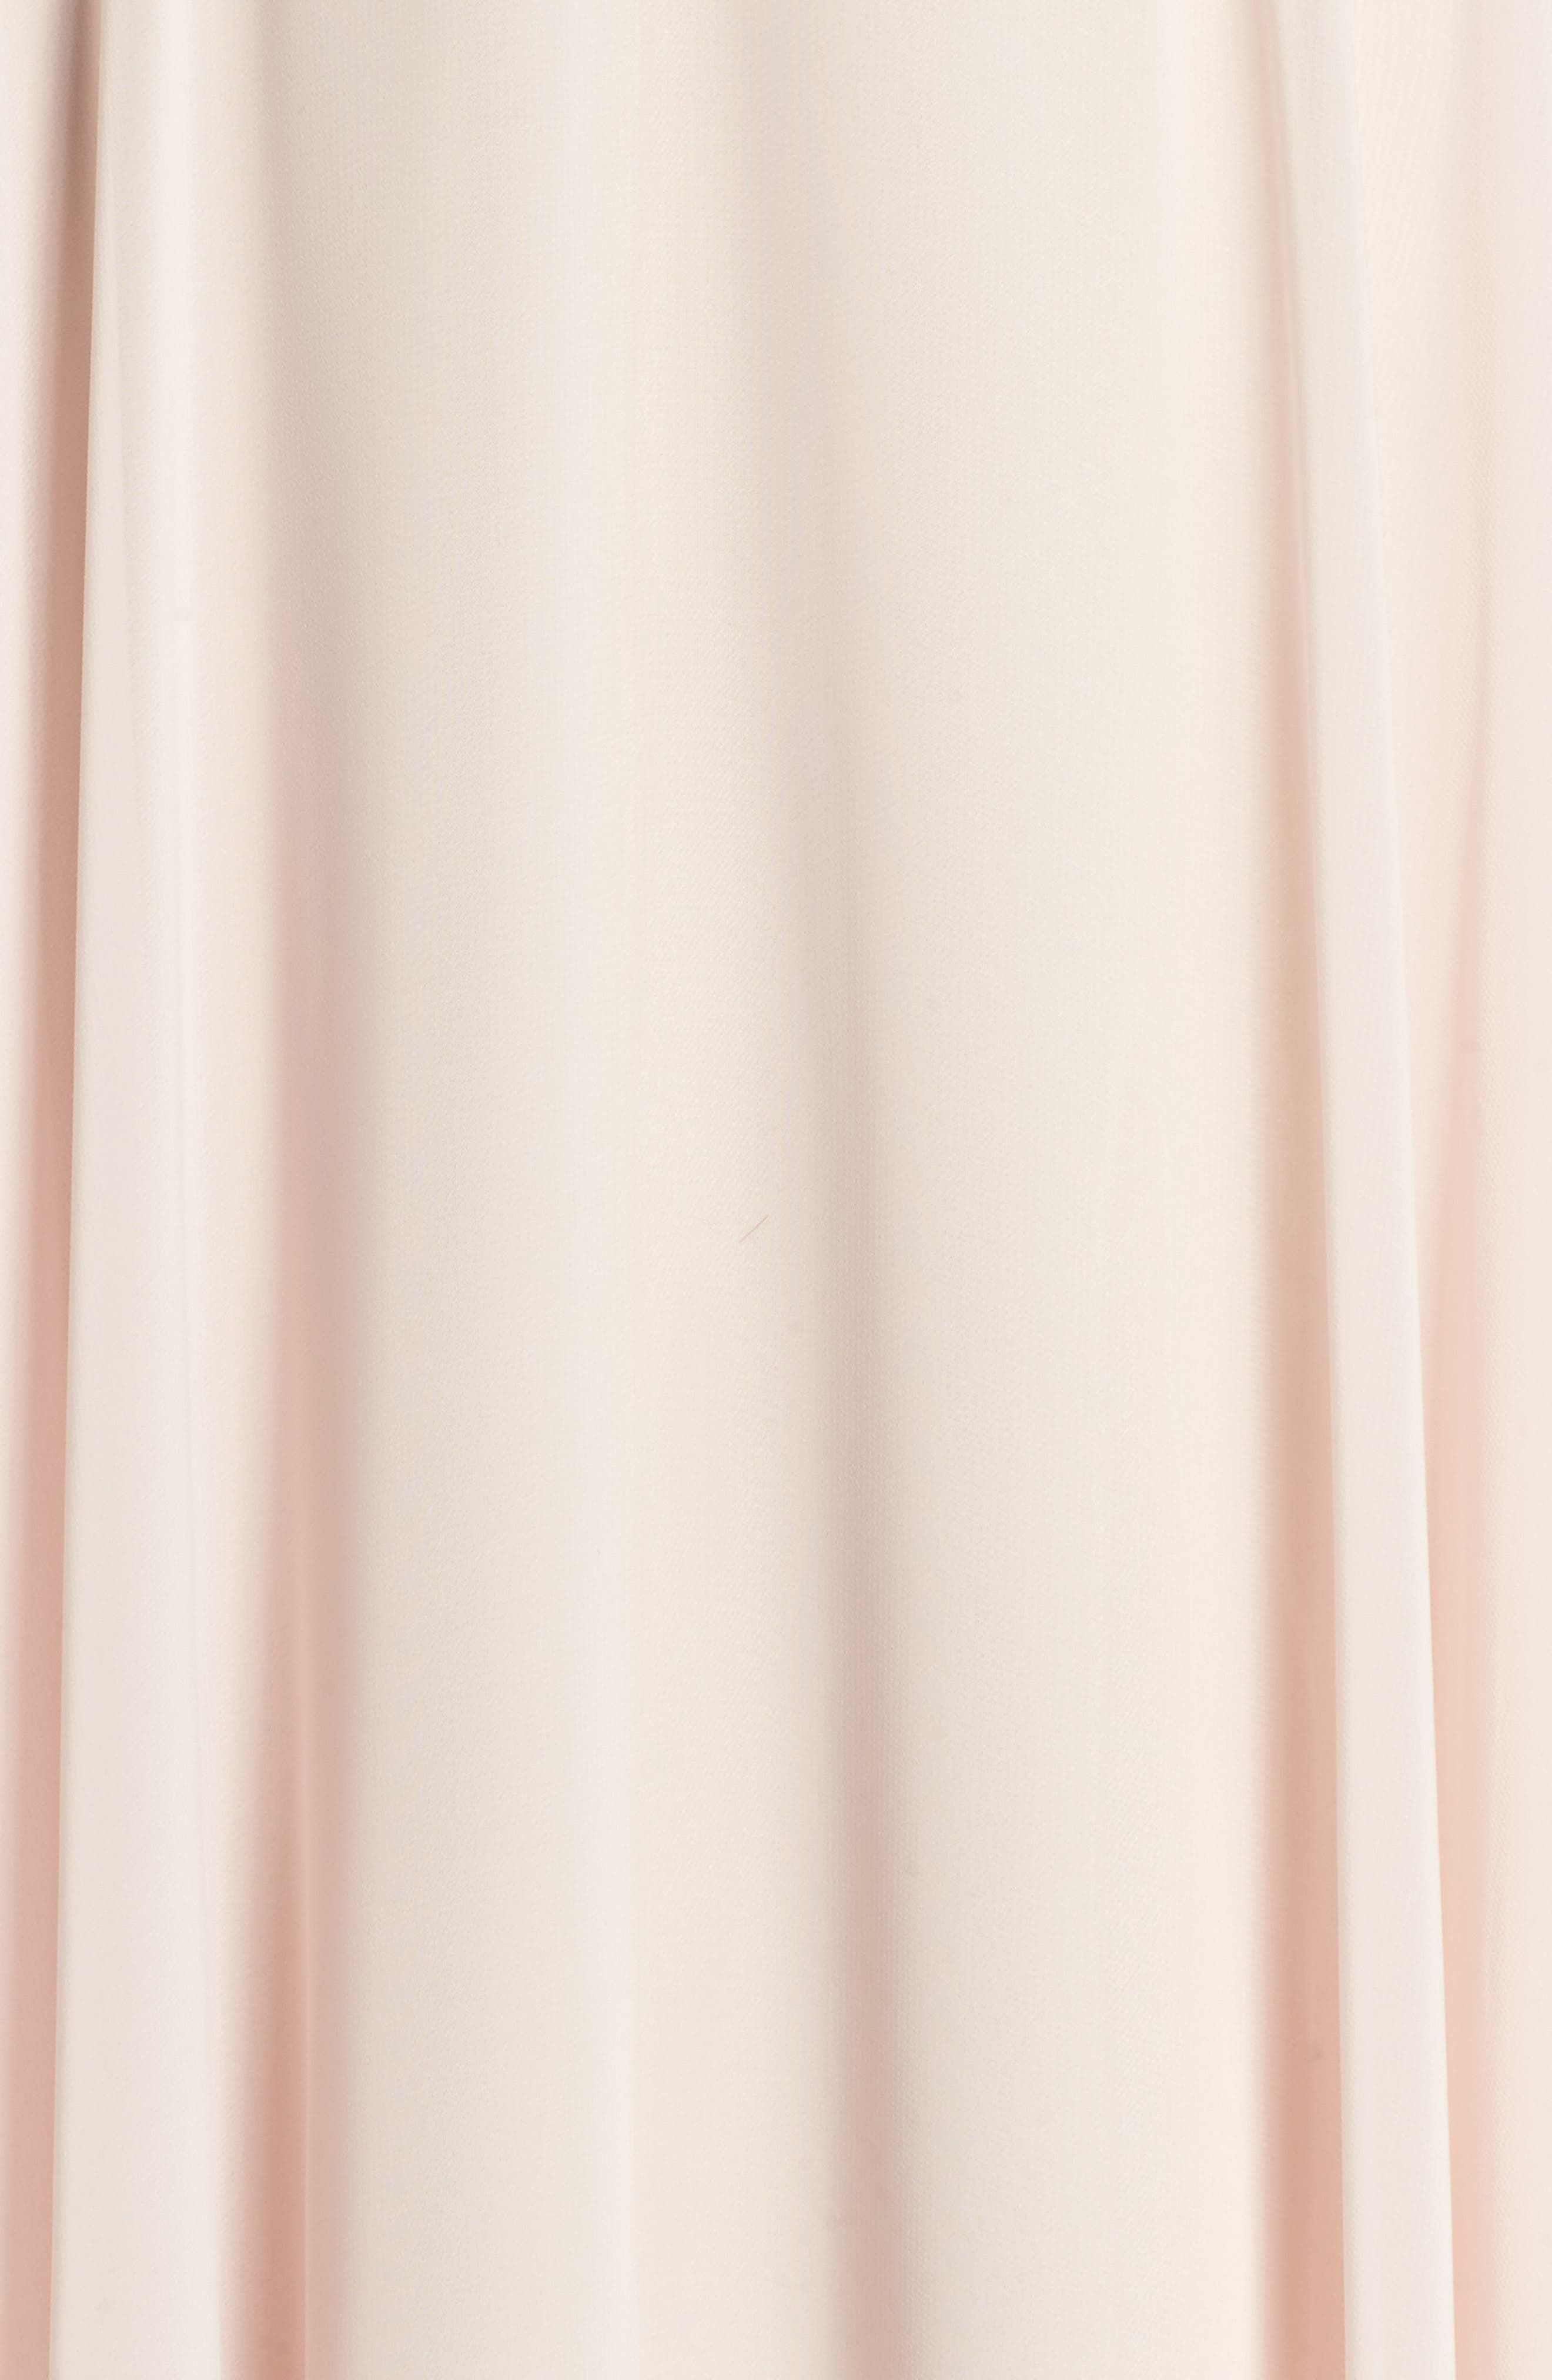 Embroidered Chiffon Halter Dress,                             Alternate thumbnail 5, color,                             Blush/ Gold